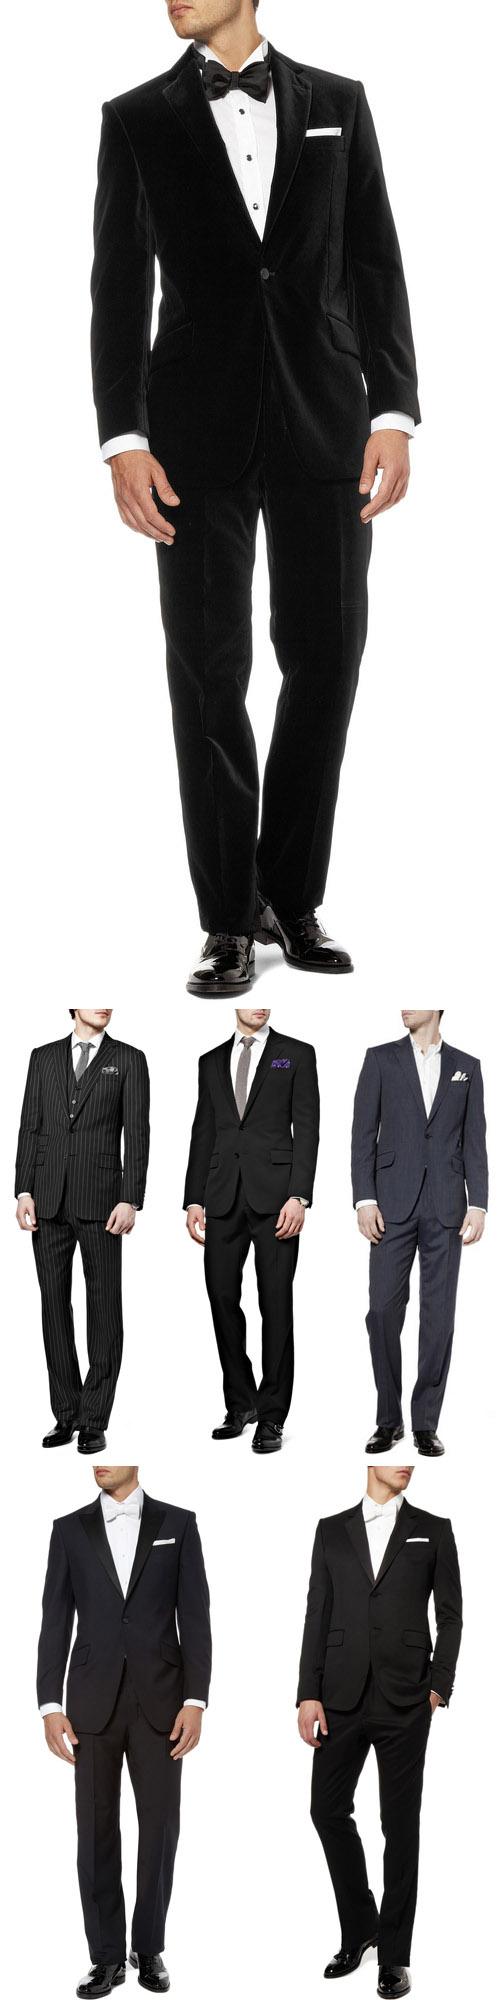 designer men's wear and wedding suites, tuxedos and accessories from Mr. Porter, Net-a-Porter.com's men's store